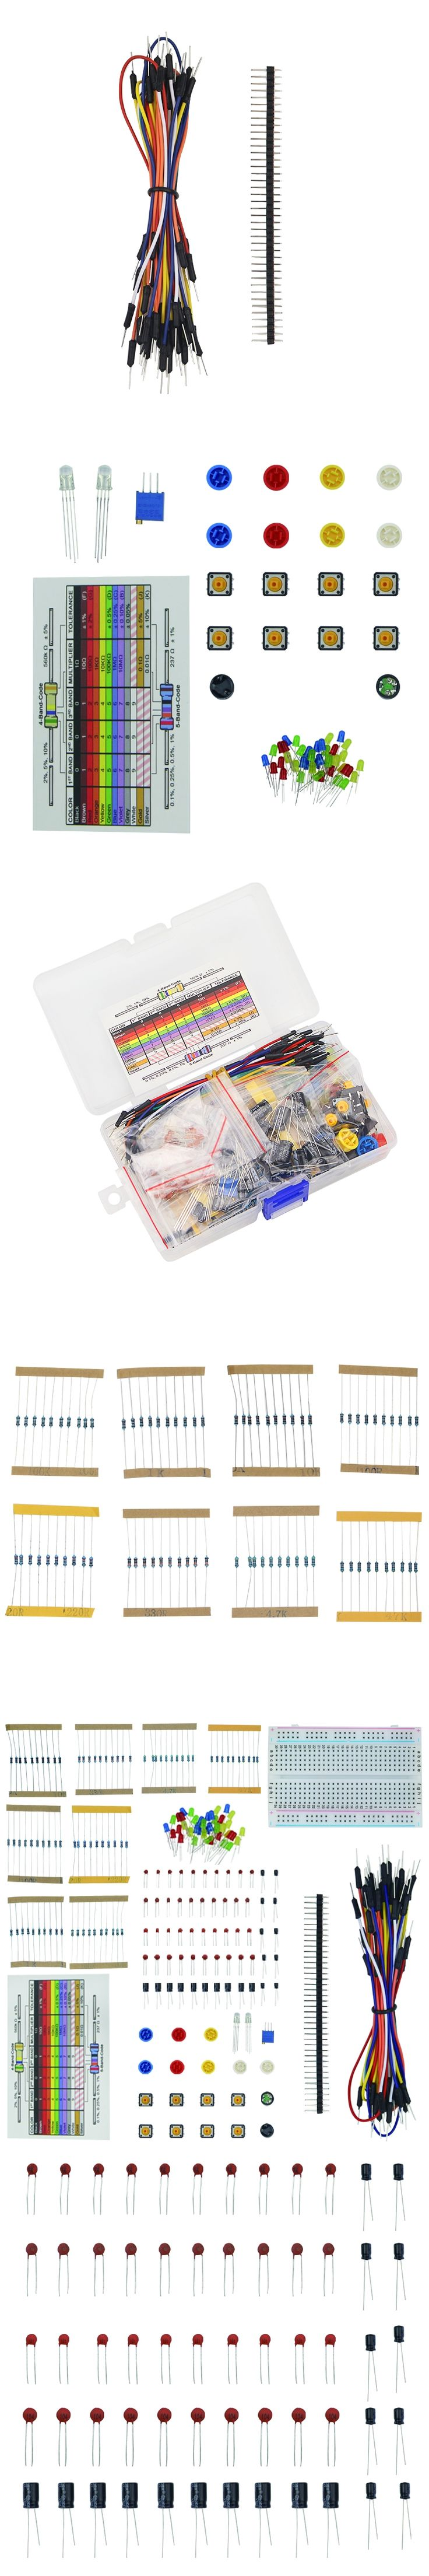 1 set Resistor LED Capacitor Jumper Wires Breadboard Handy Starter Kit for UNO R3 Raspberry Pi 3 + Retail Box for Arduino